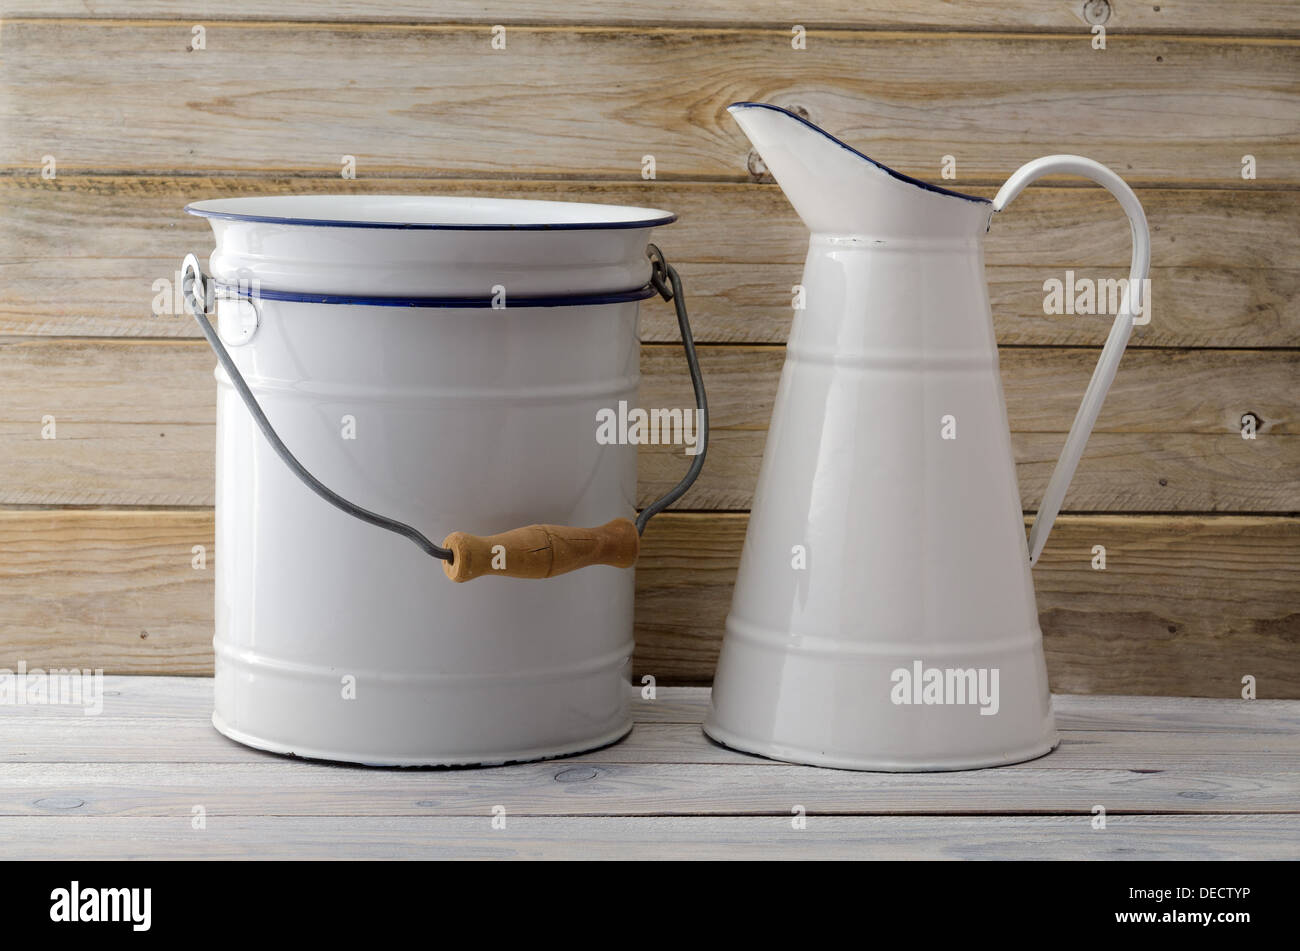 A simple rustic, retro bathroom scene with enamel jug, bowl on a dilapidated old wooden cabinet Stock Photo